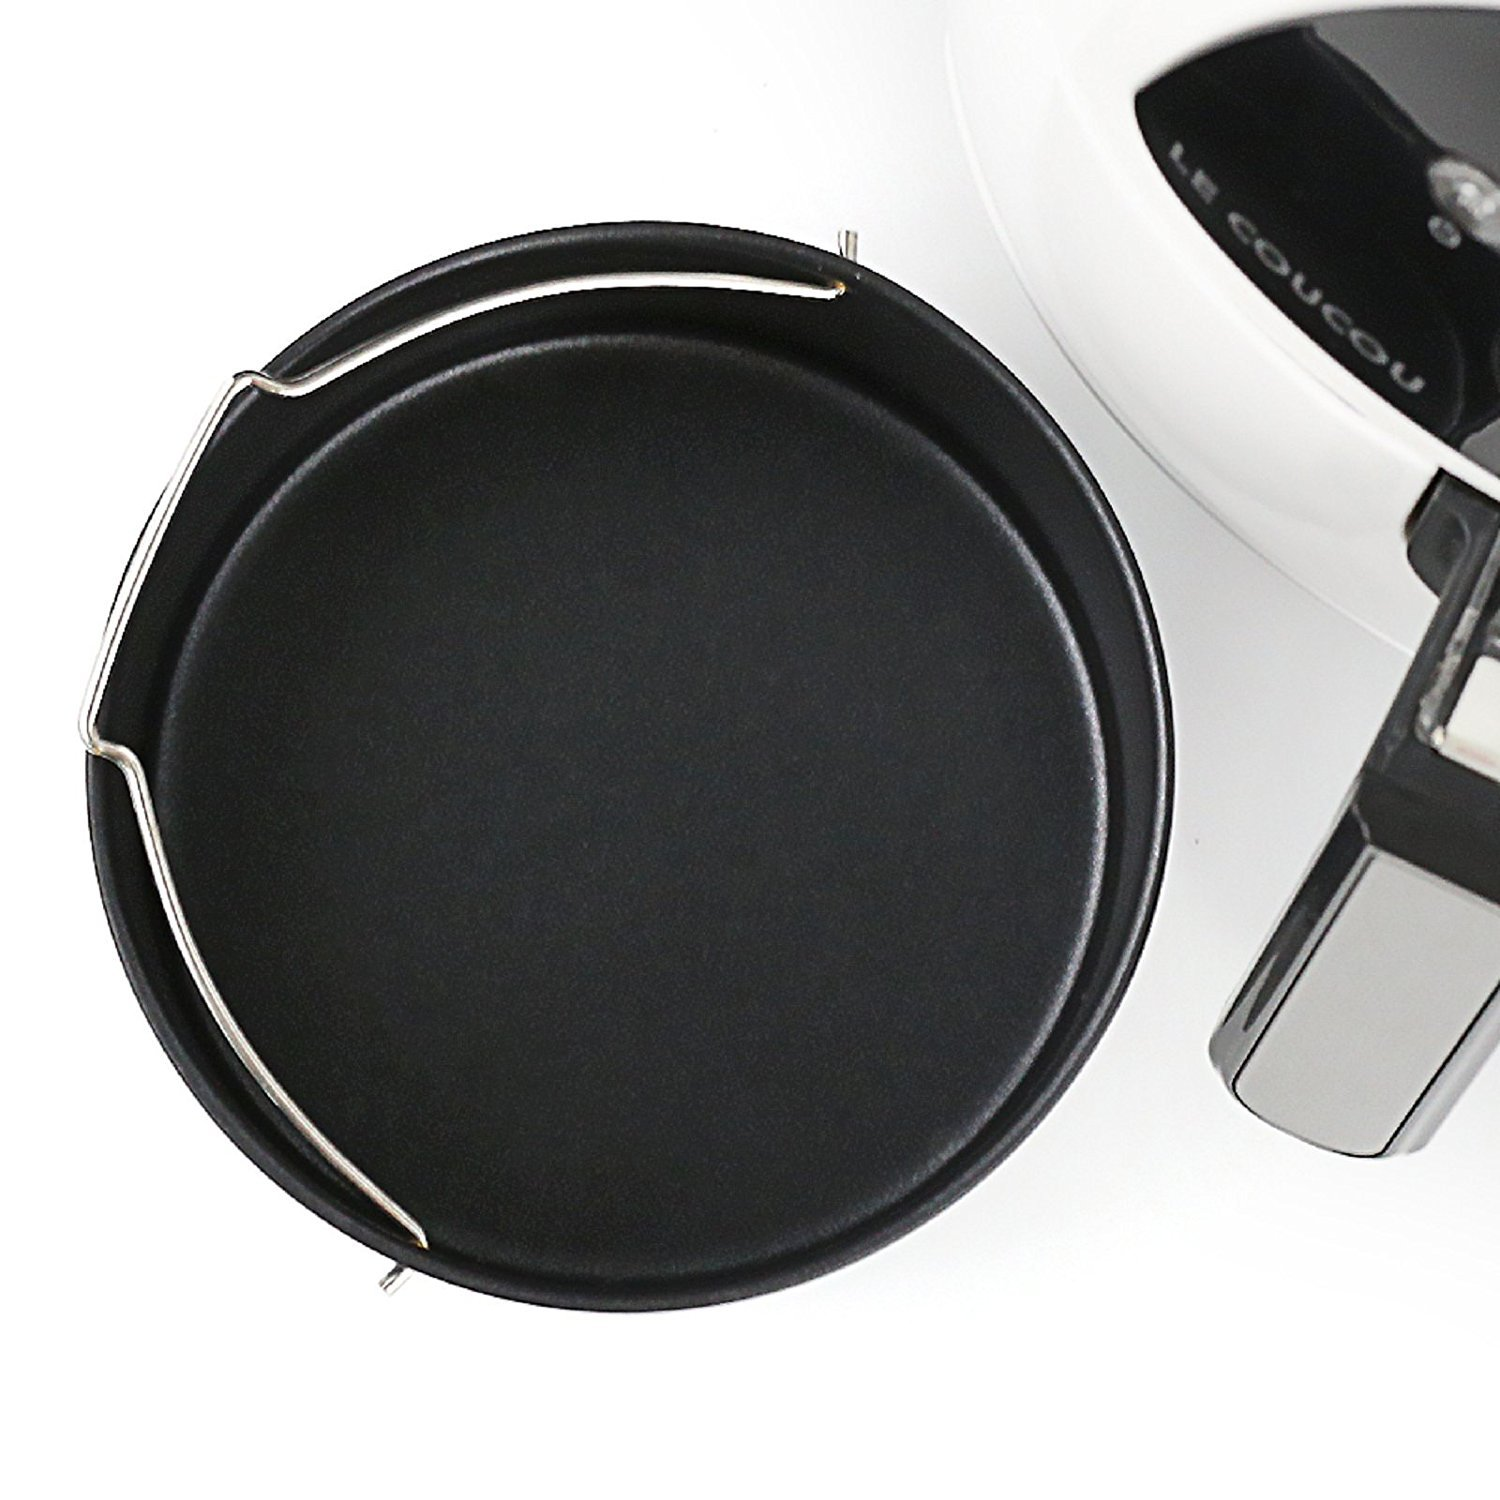 Air Fryer Baking Dish Non Stick 6'' Cake Quiche Mold for Le Coucou Harmony I & II